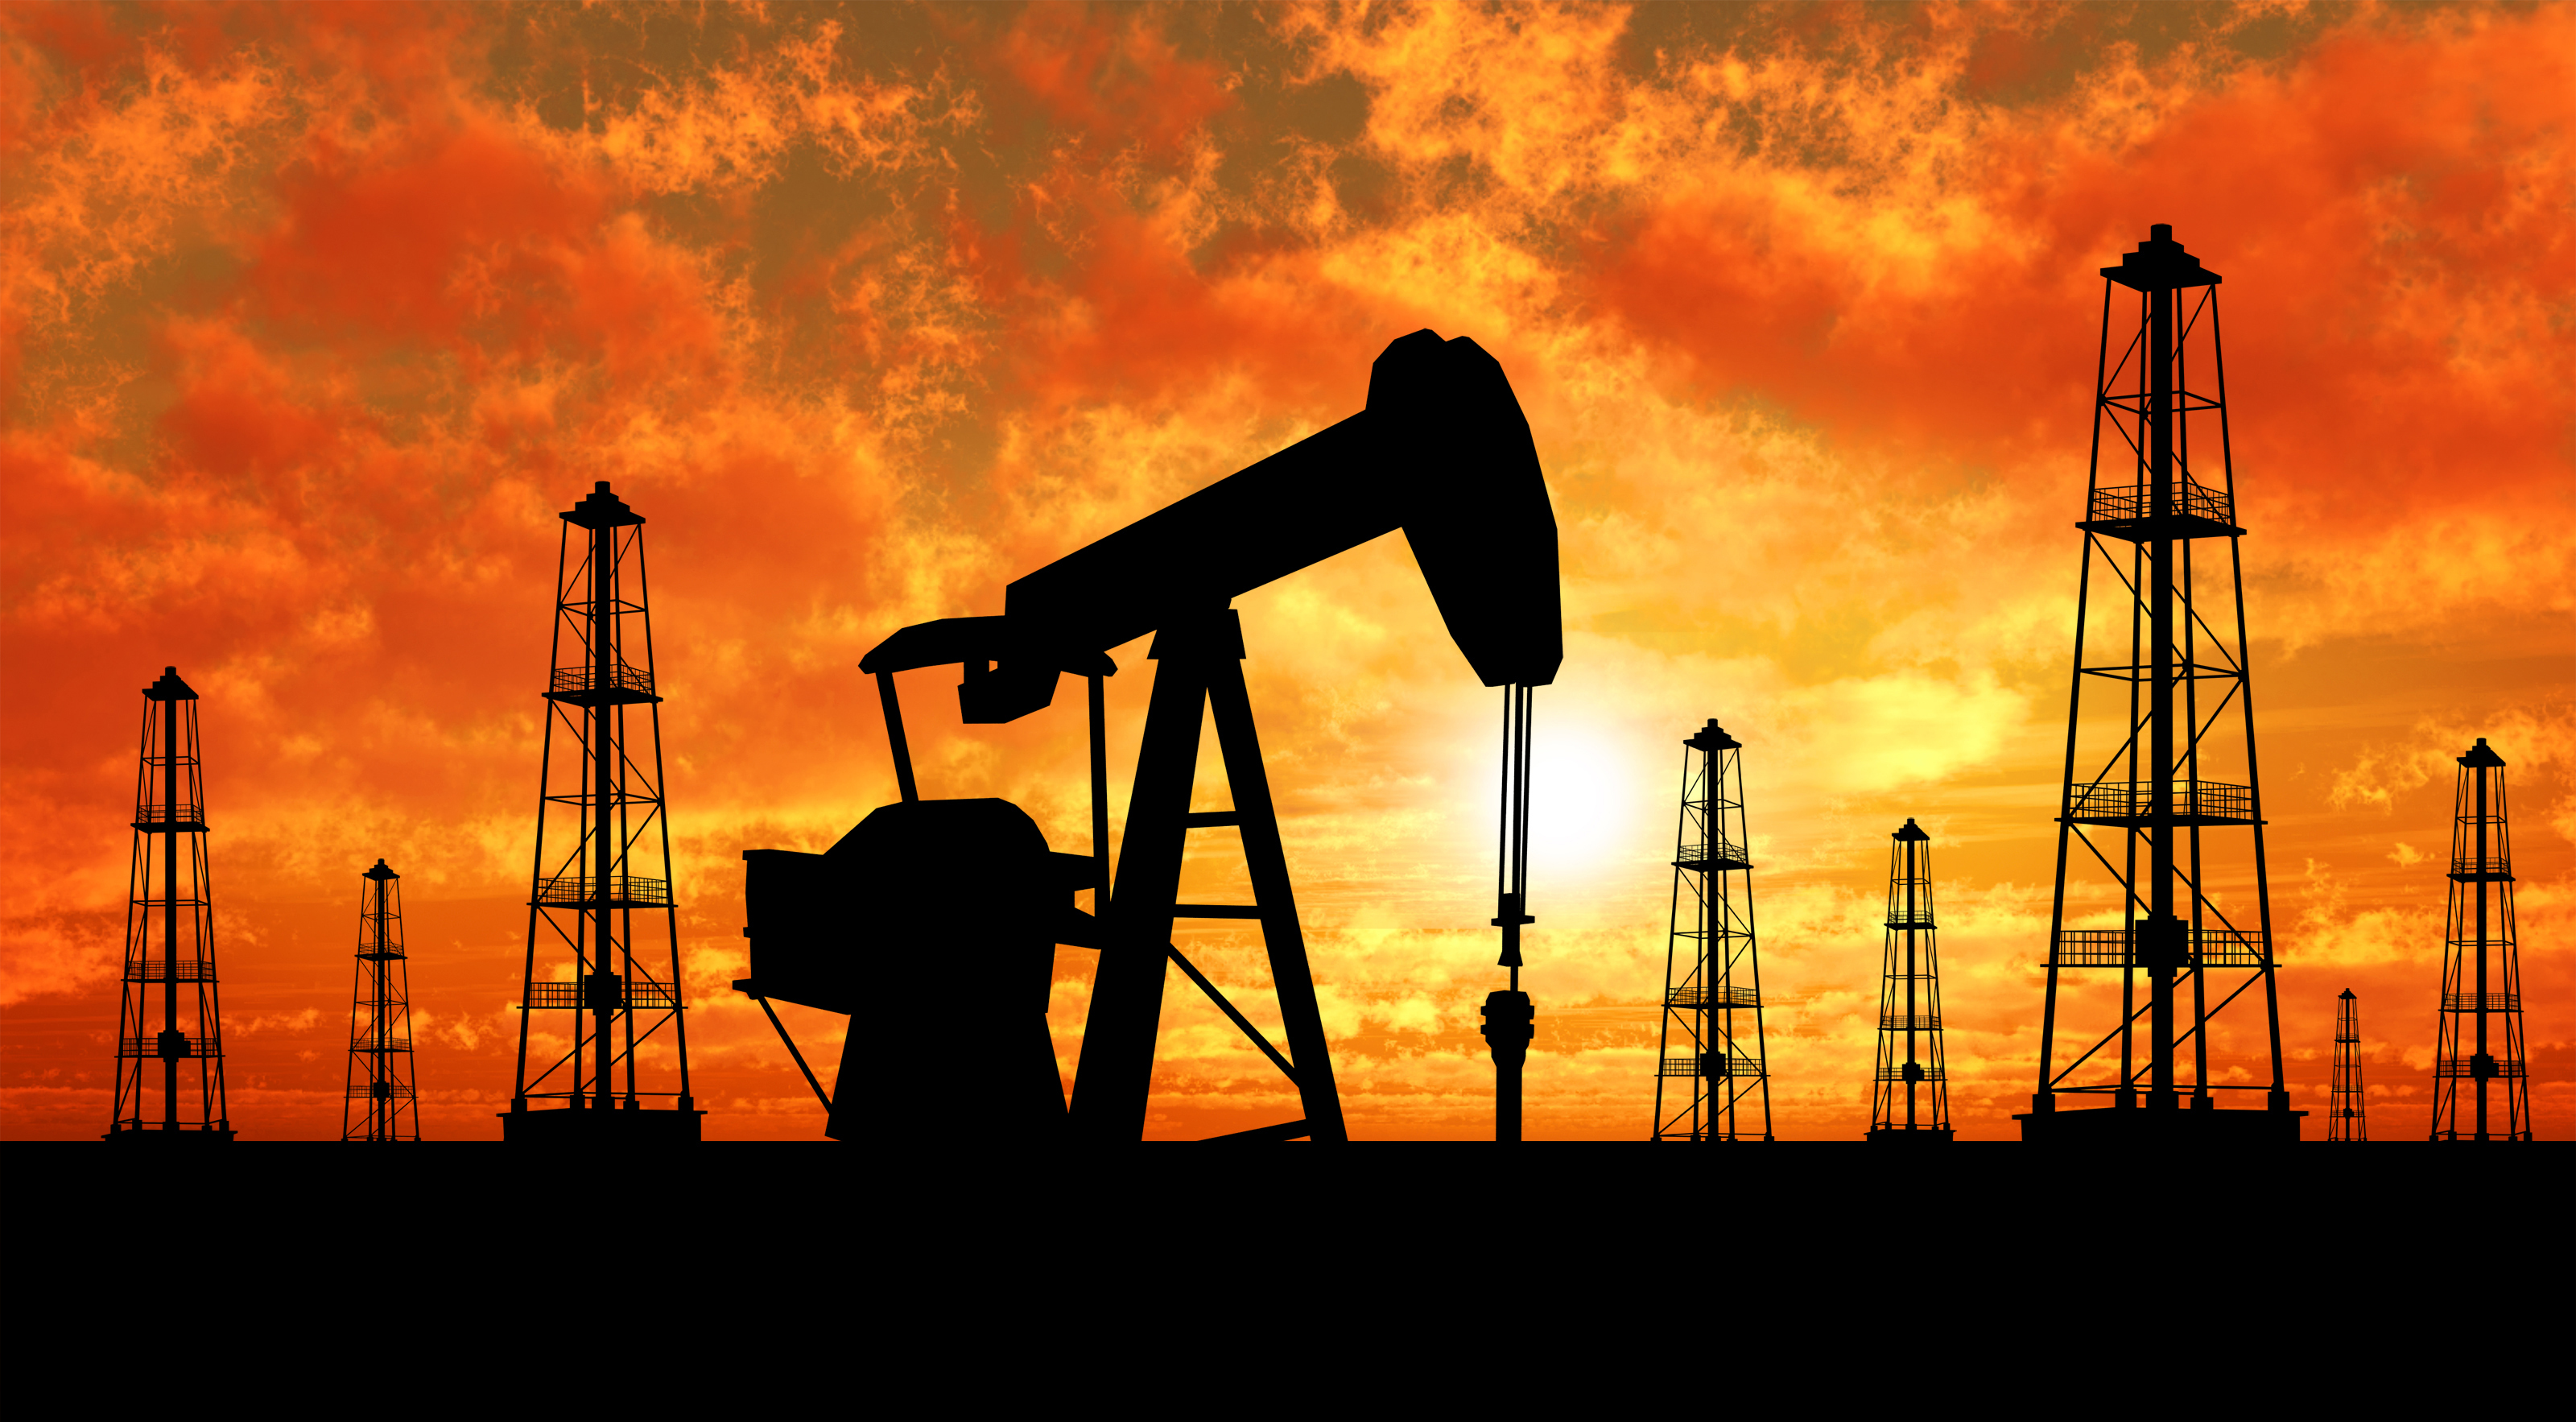 Oil Backgrounds on Wallpapers Vista